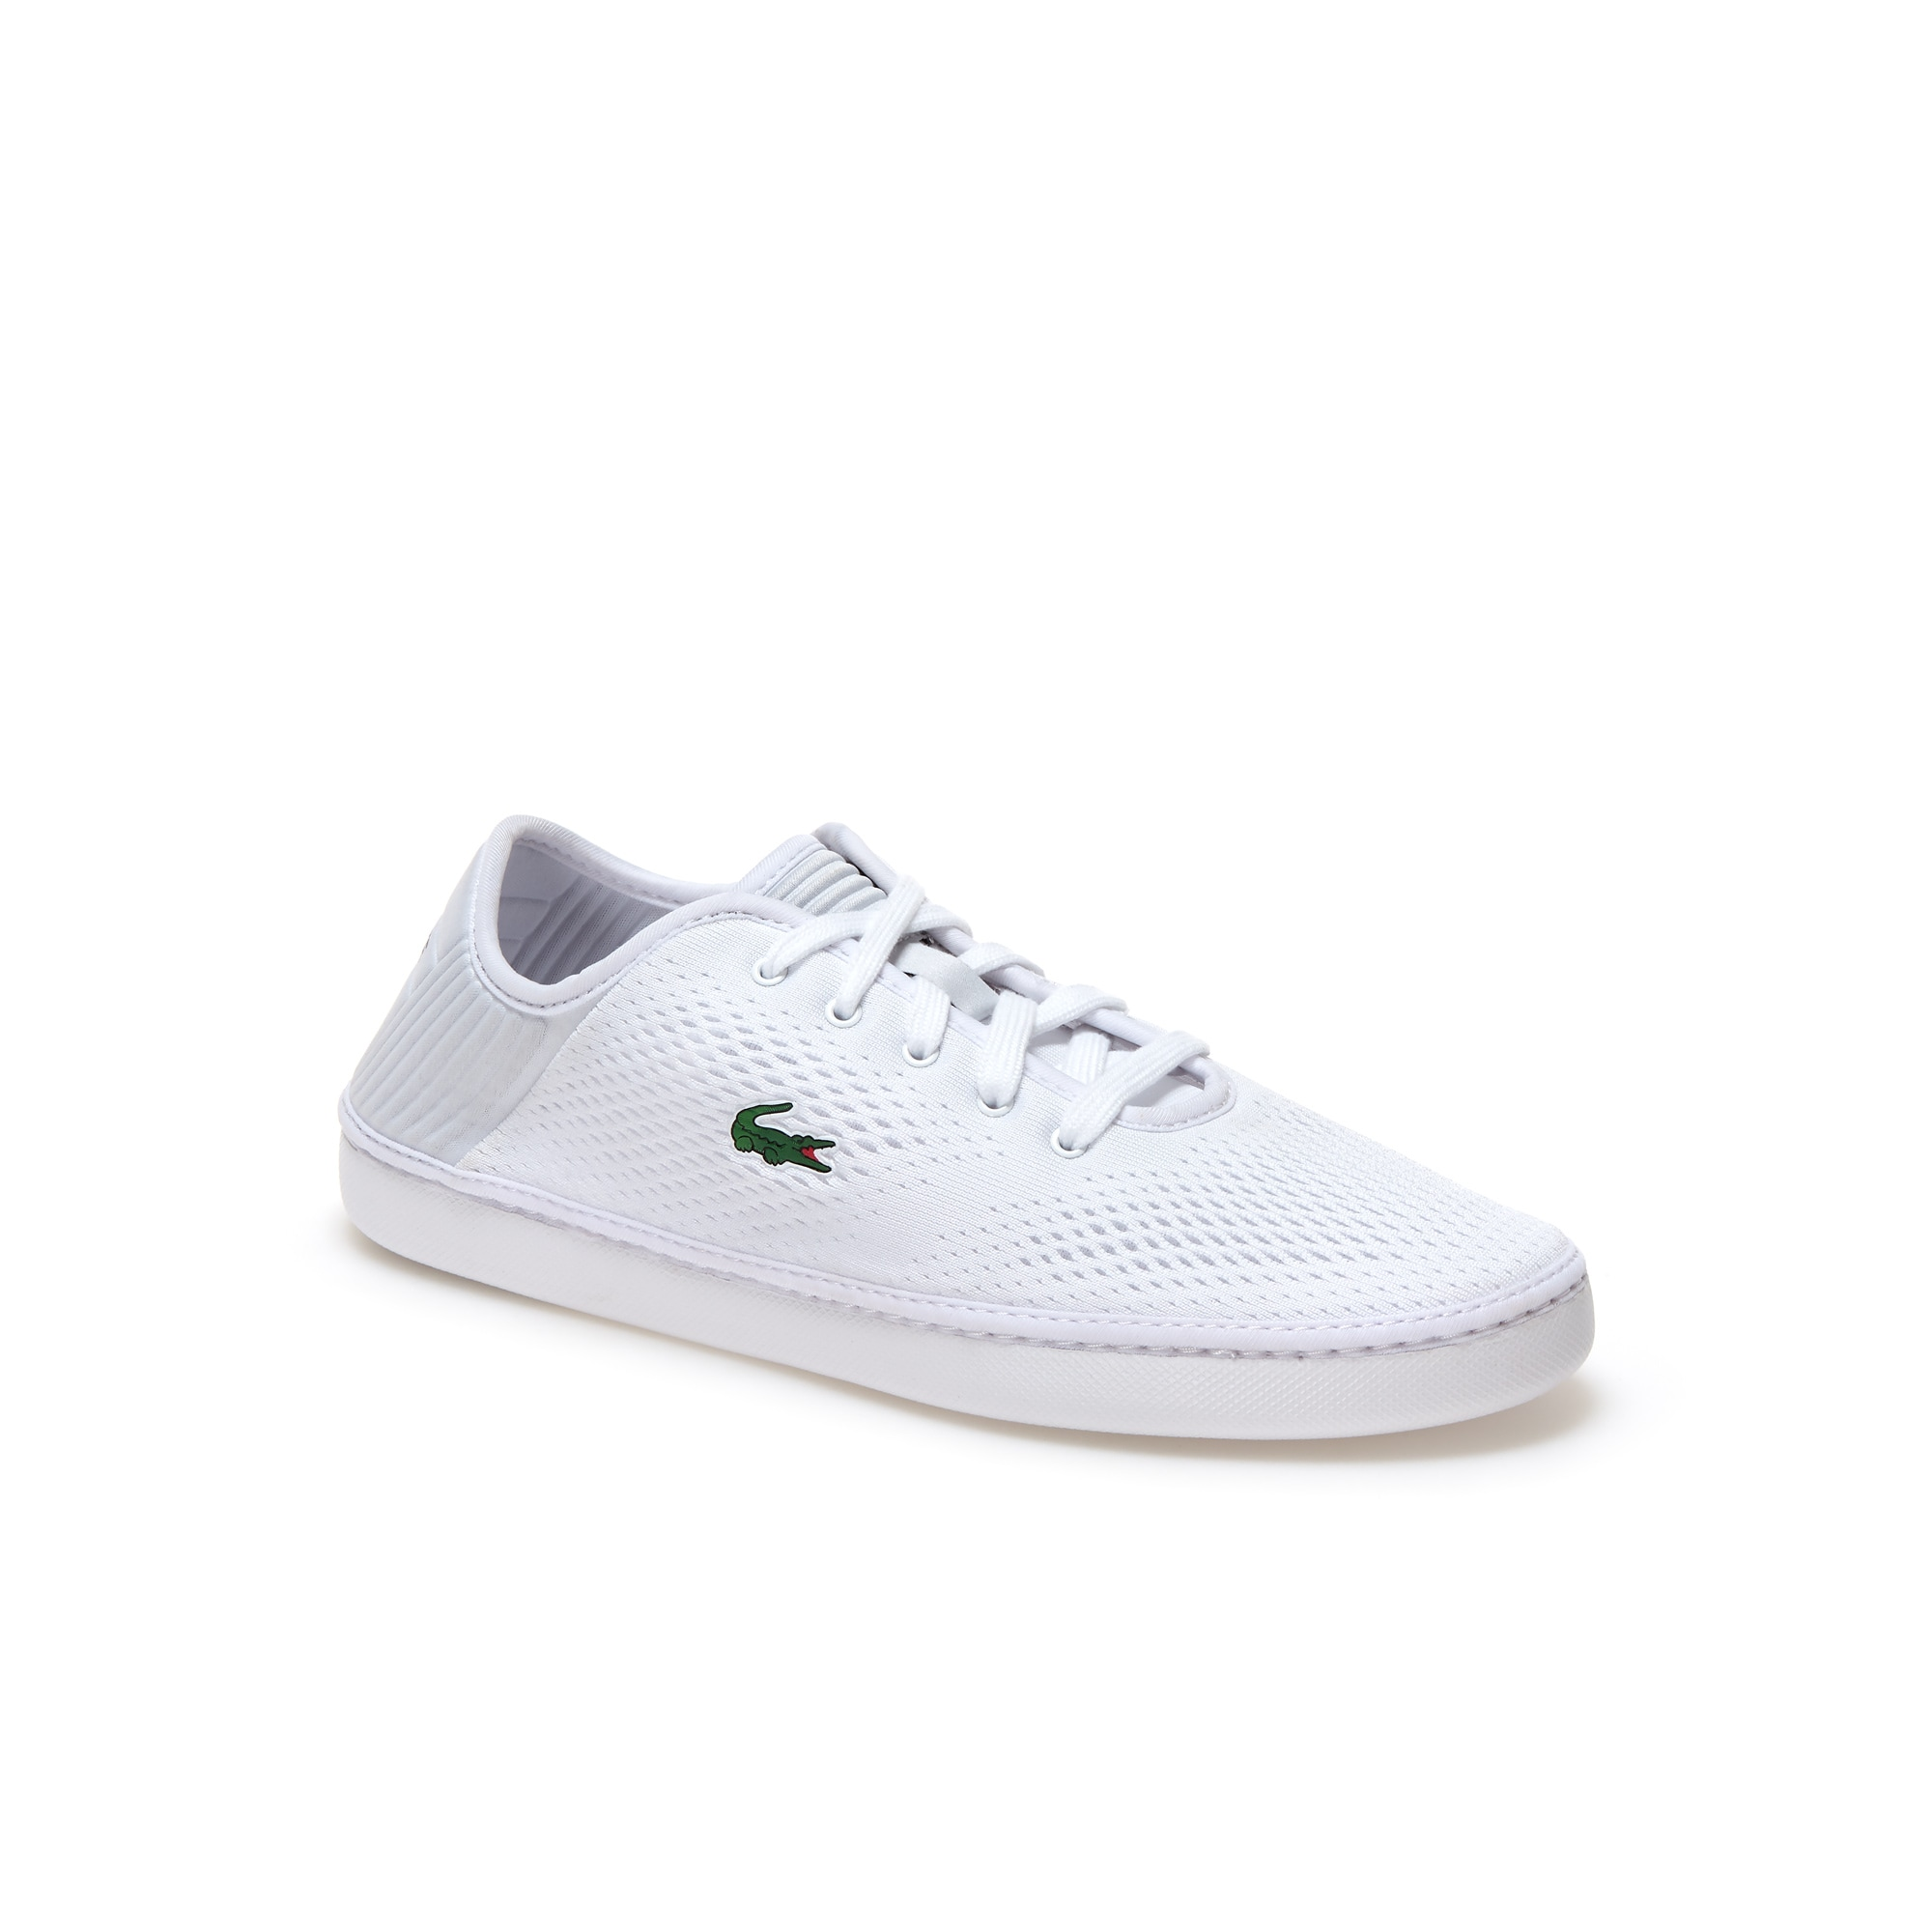 Men's L.ydro Lace Textile Trainers